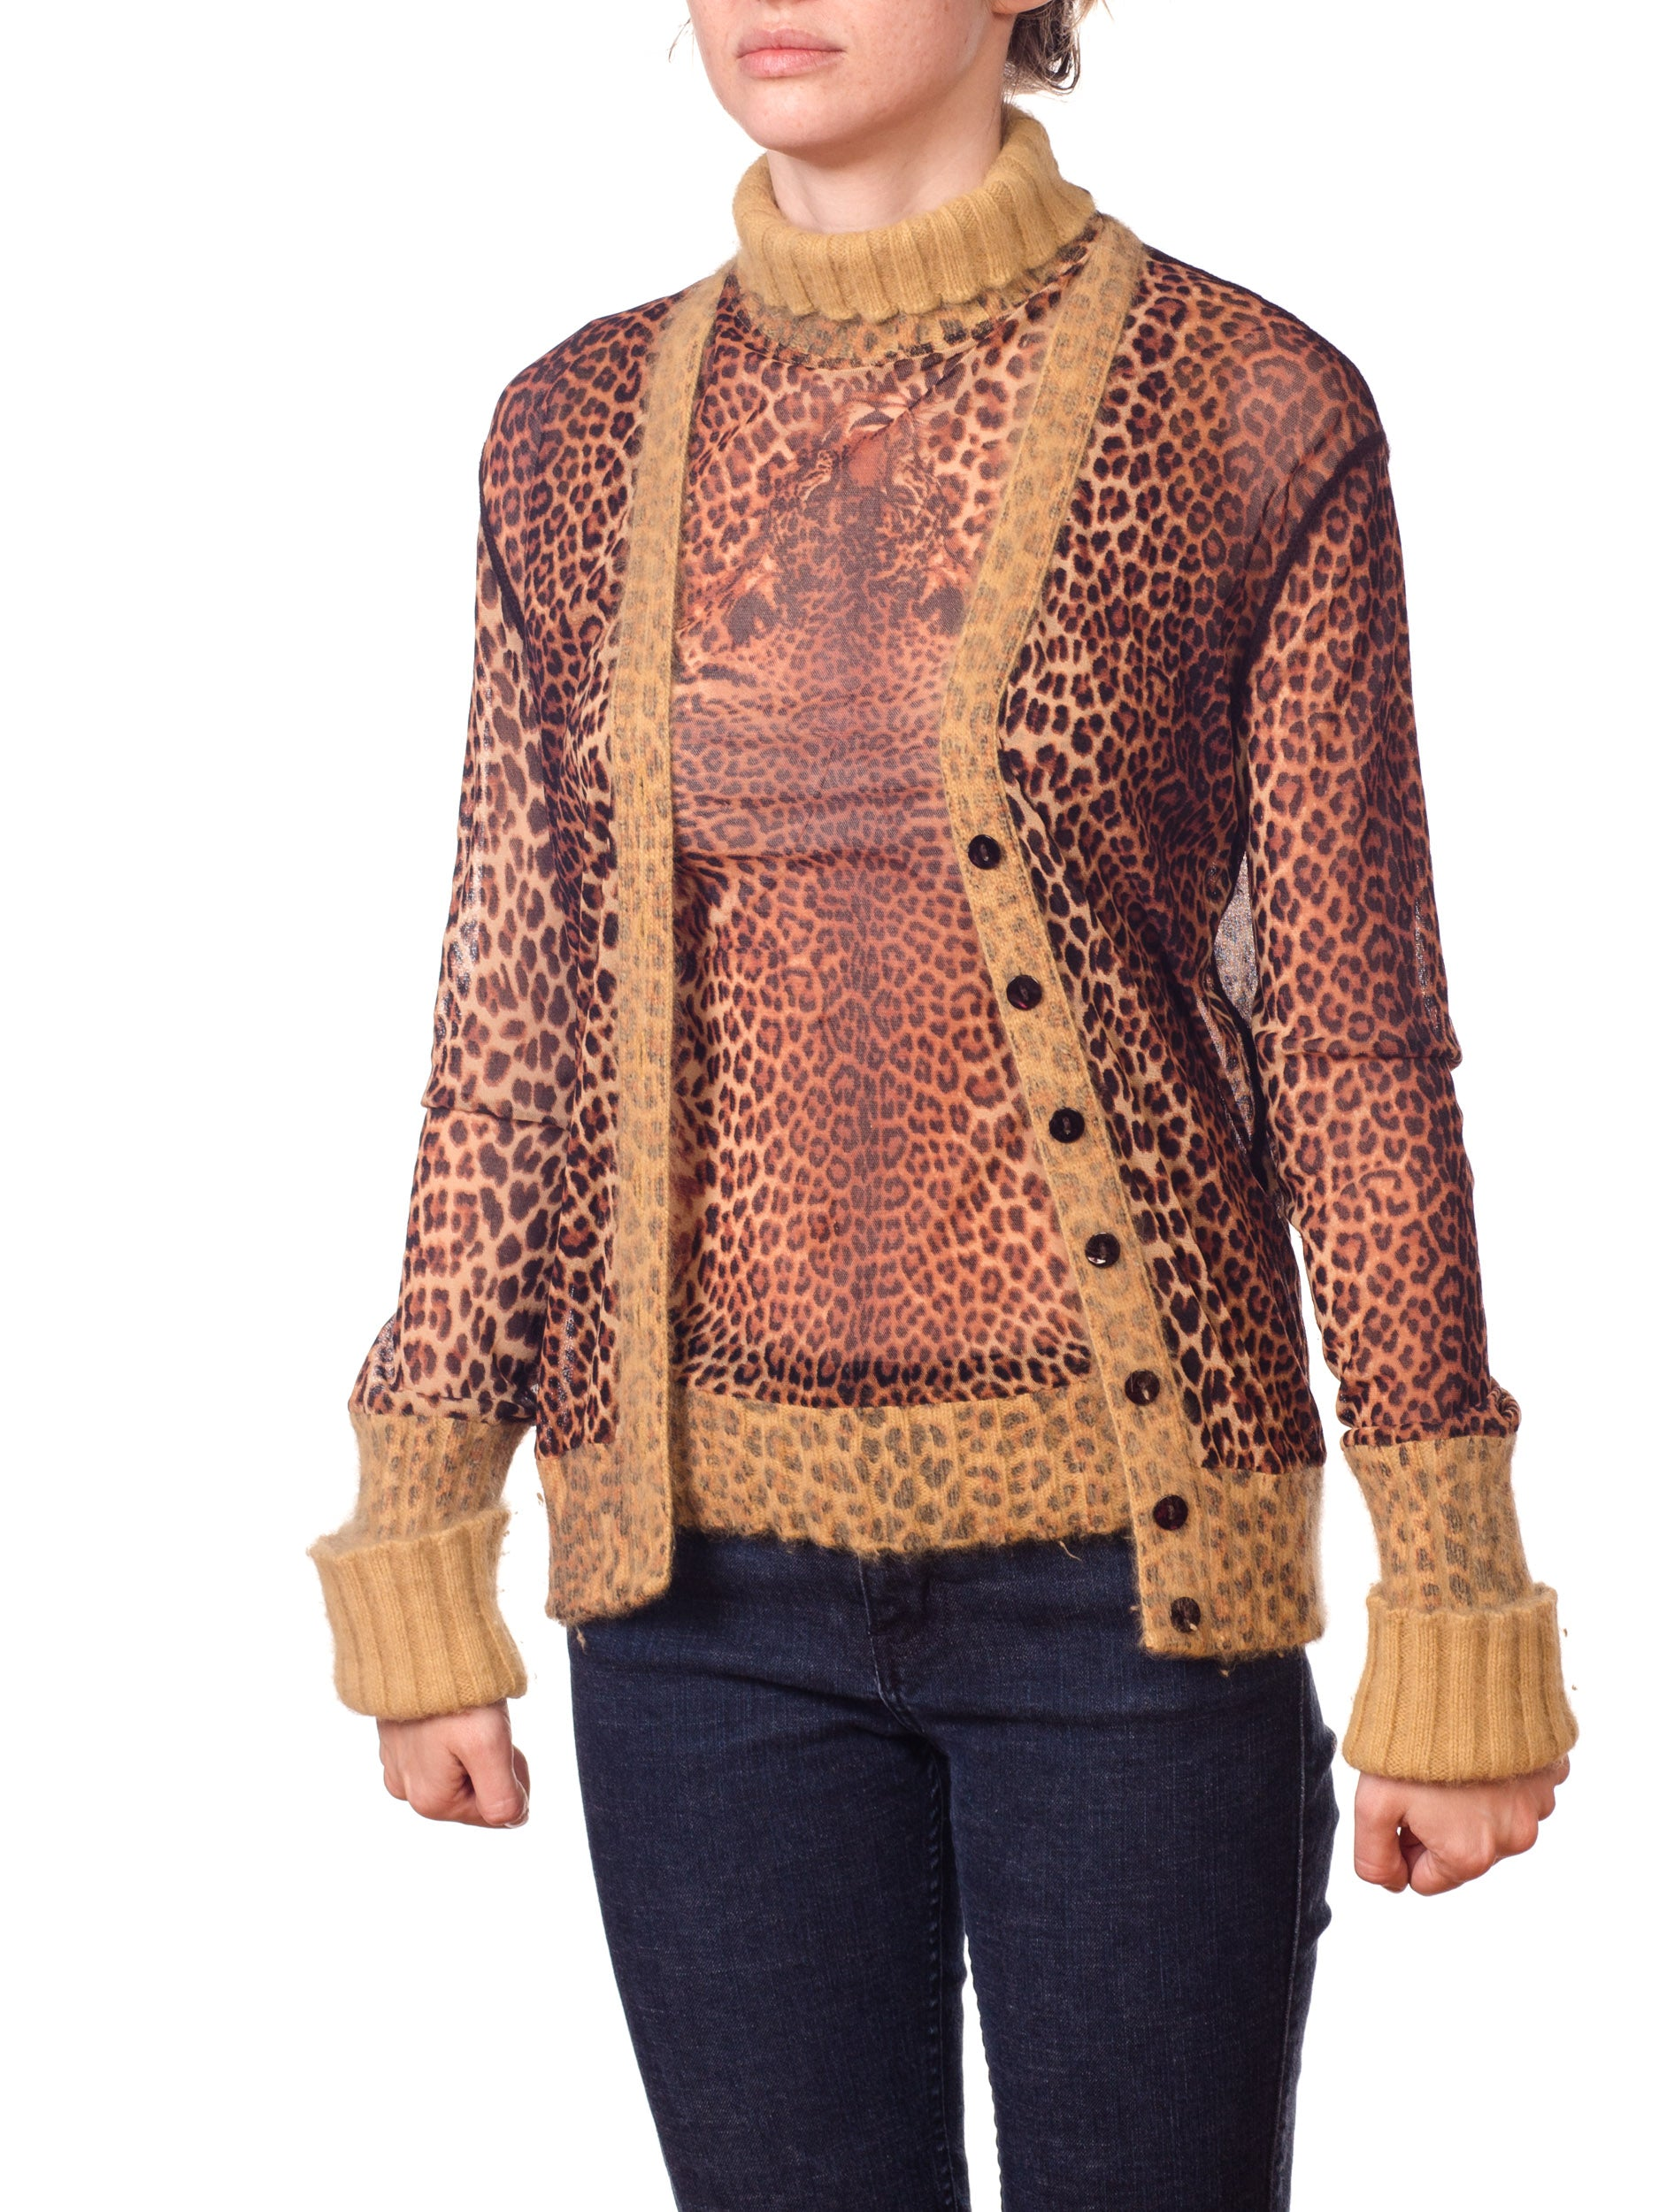 2000S JEAN PAUL GAULTIER Leopard Mesh Top And Cardigan Ensemble With Angora Trim